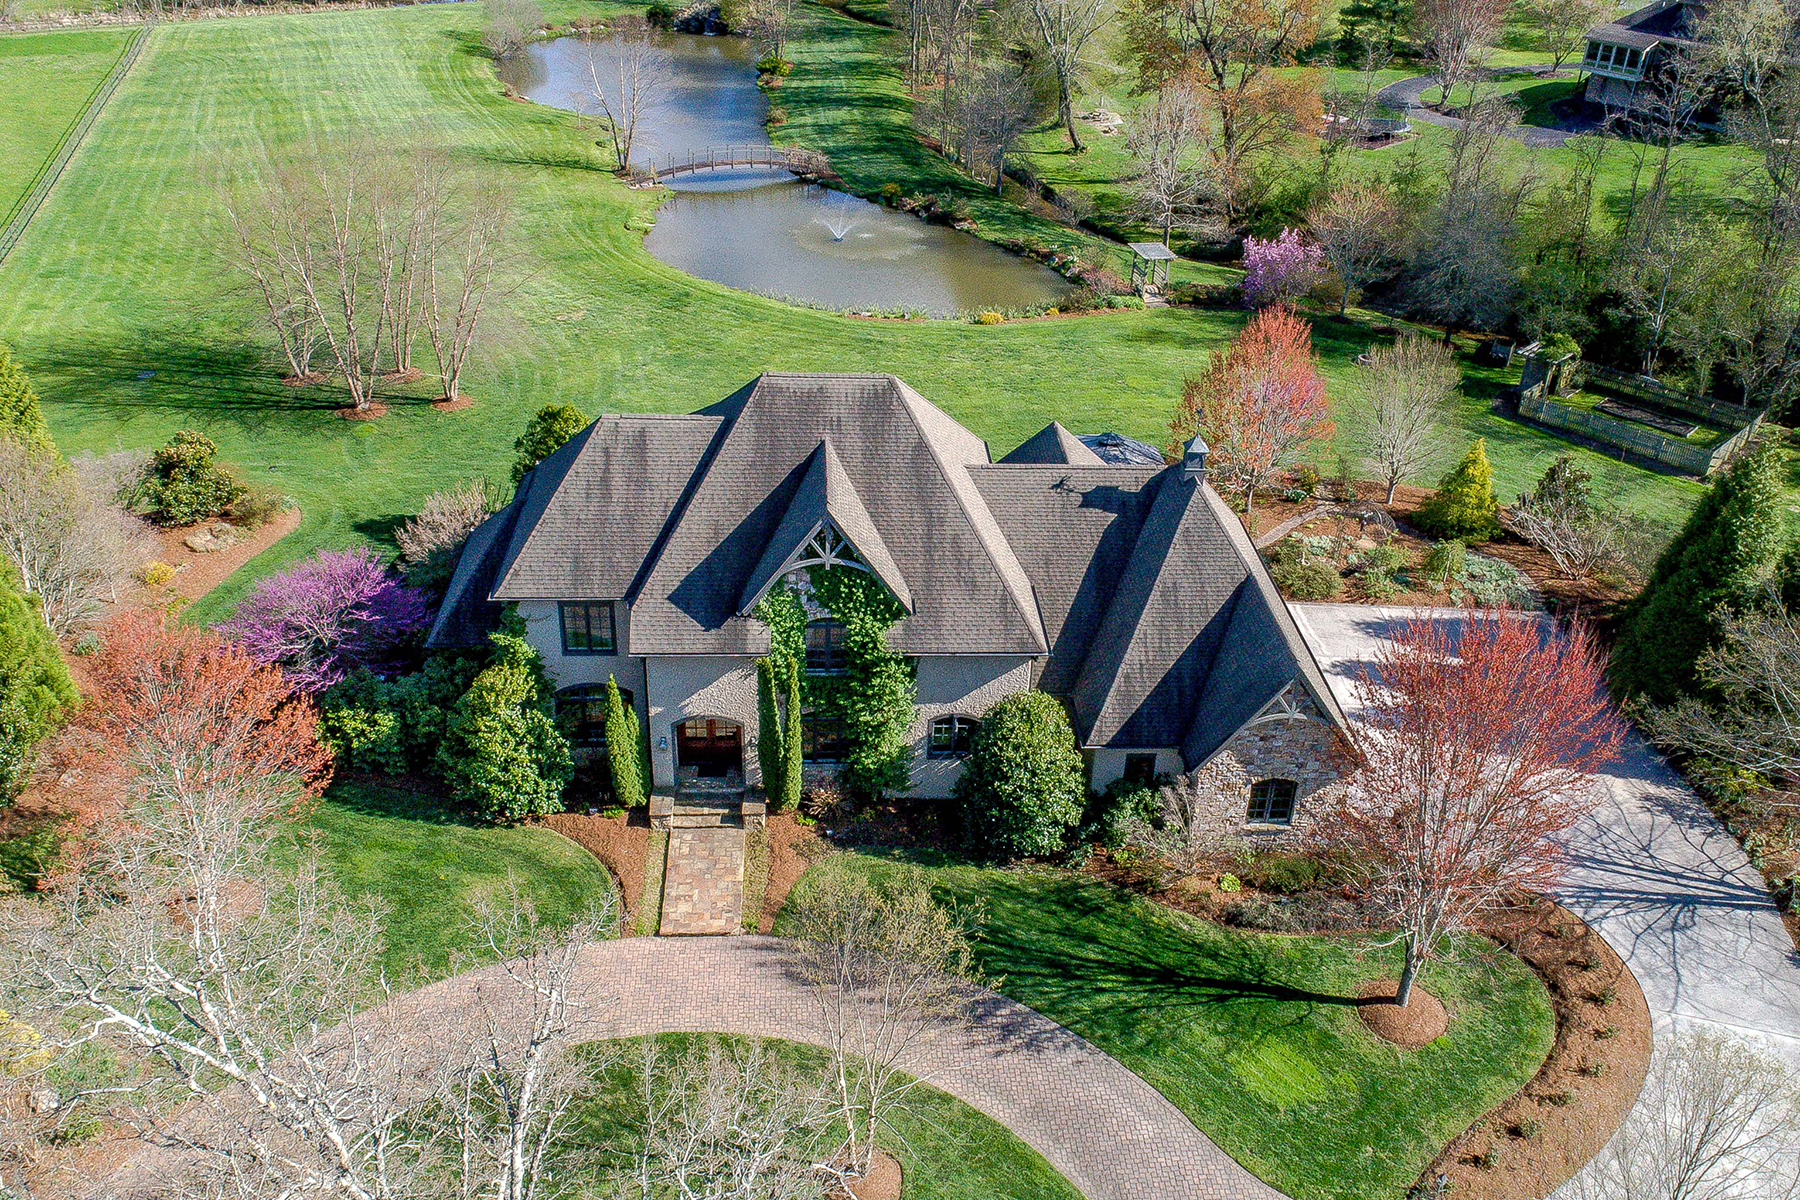 Single Family Home for Active at FAIRVIEW 415 Brush Creek Road Fairview, North Carolina 28730 United States